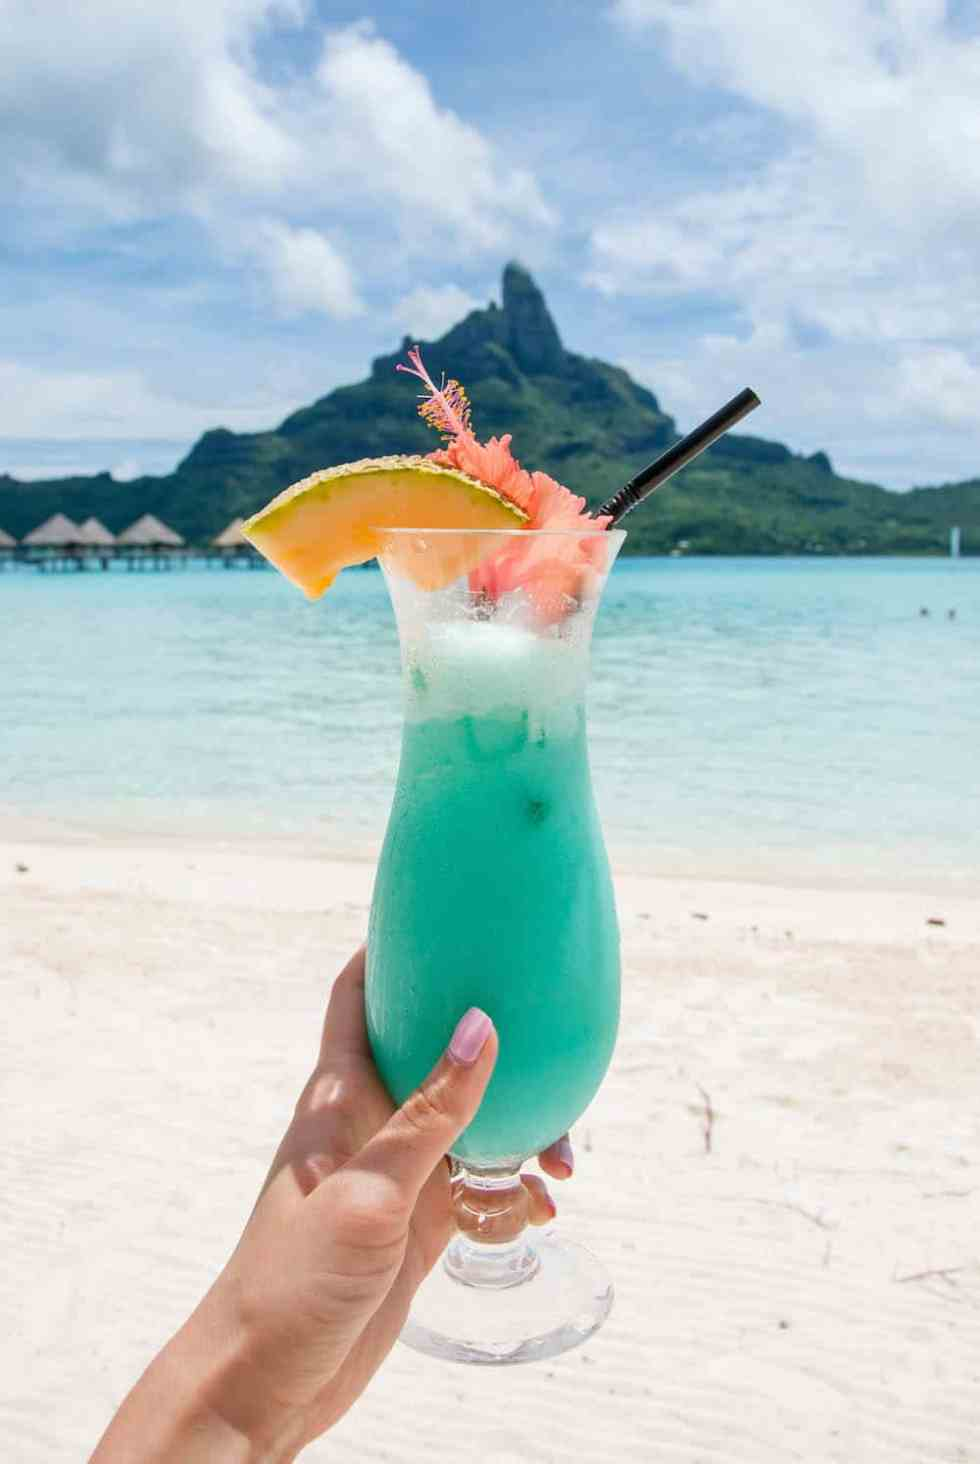 Island-Inspired Edible Cocktail Garnish in Bora Bora